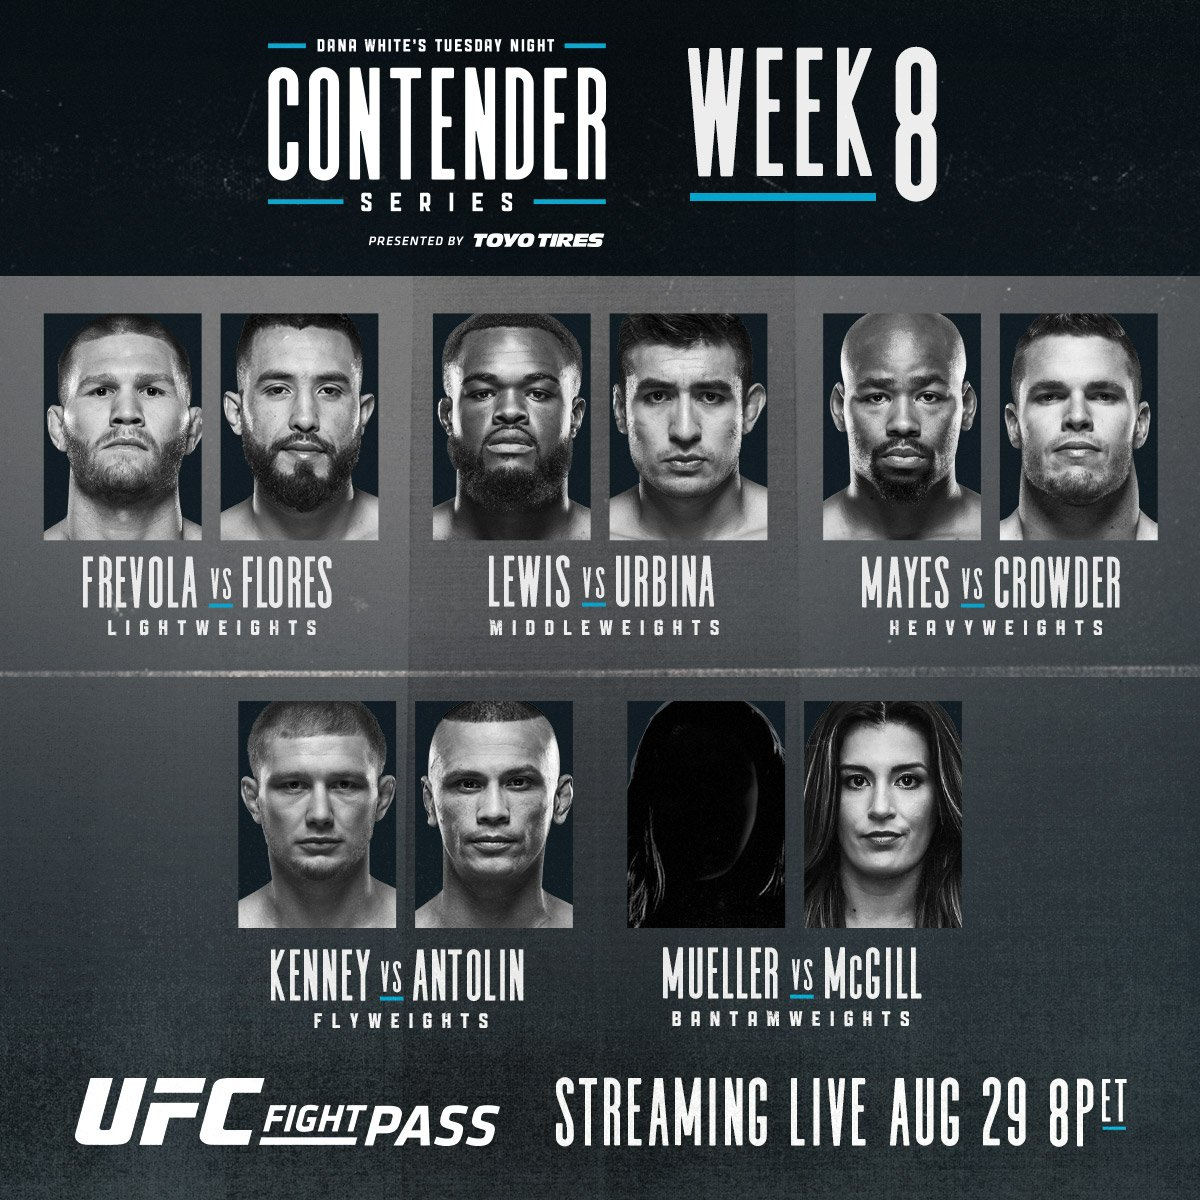 Dana White's Tuesday Night Contender Series Week 8 Results